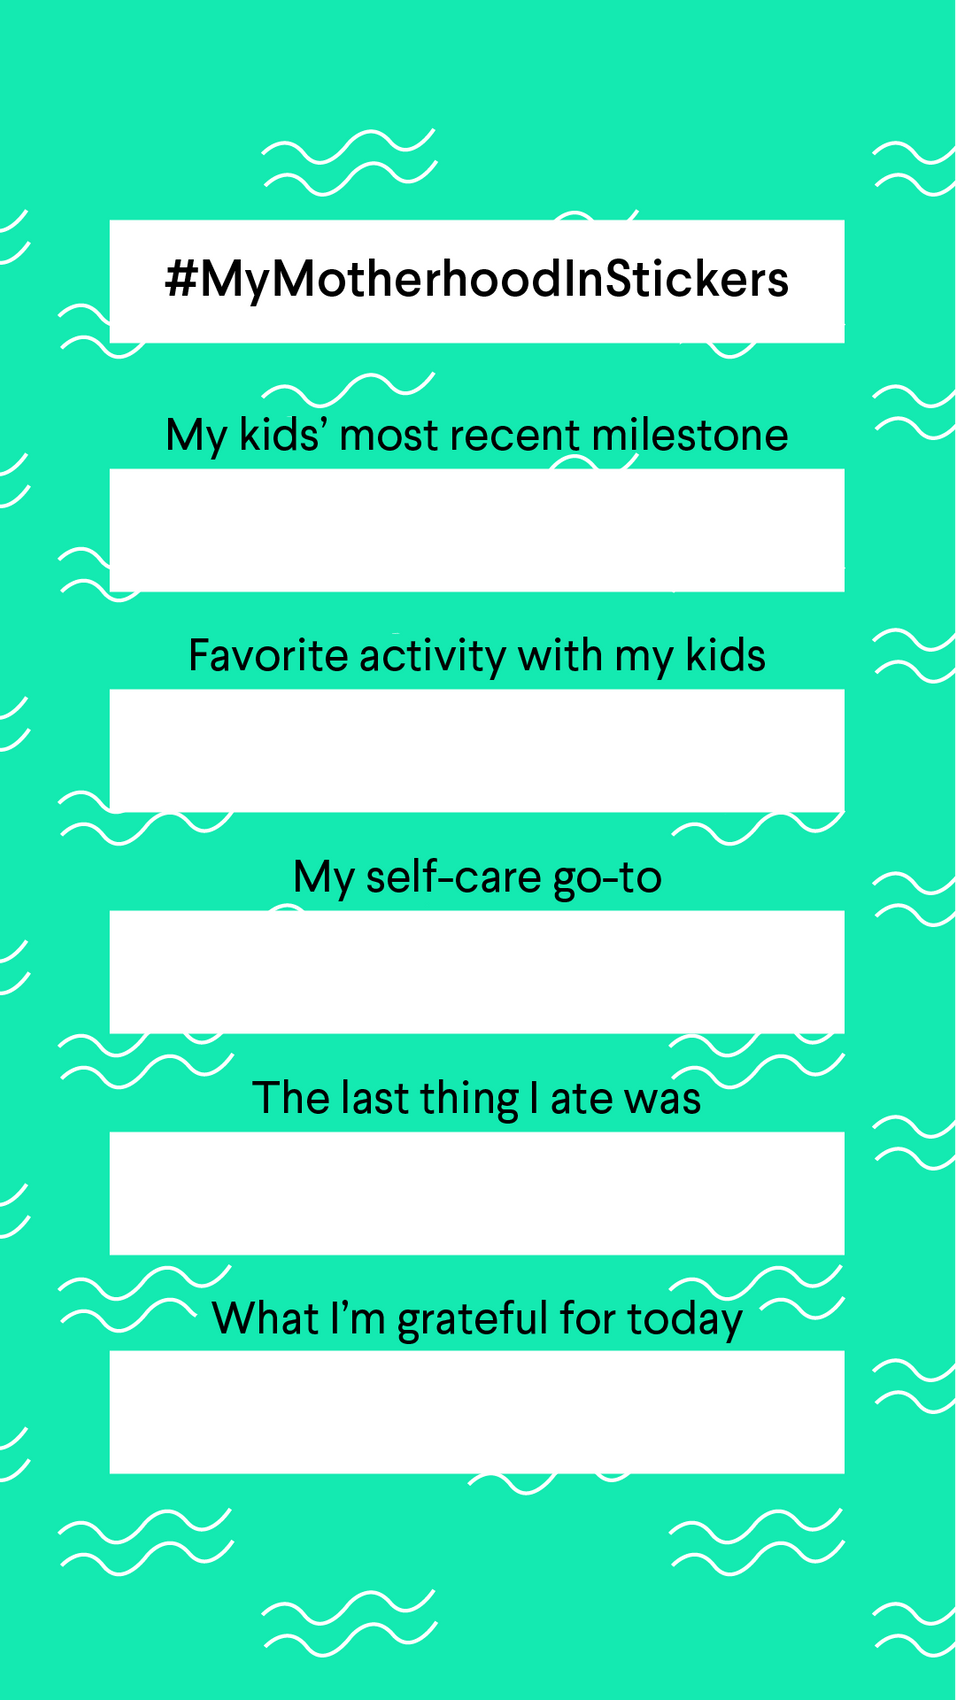 sticker-response-parenting-stories-1080x